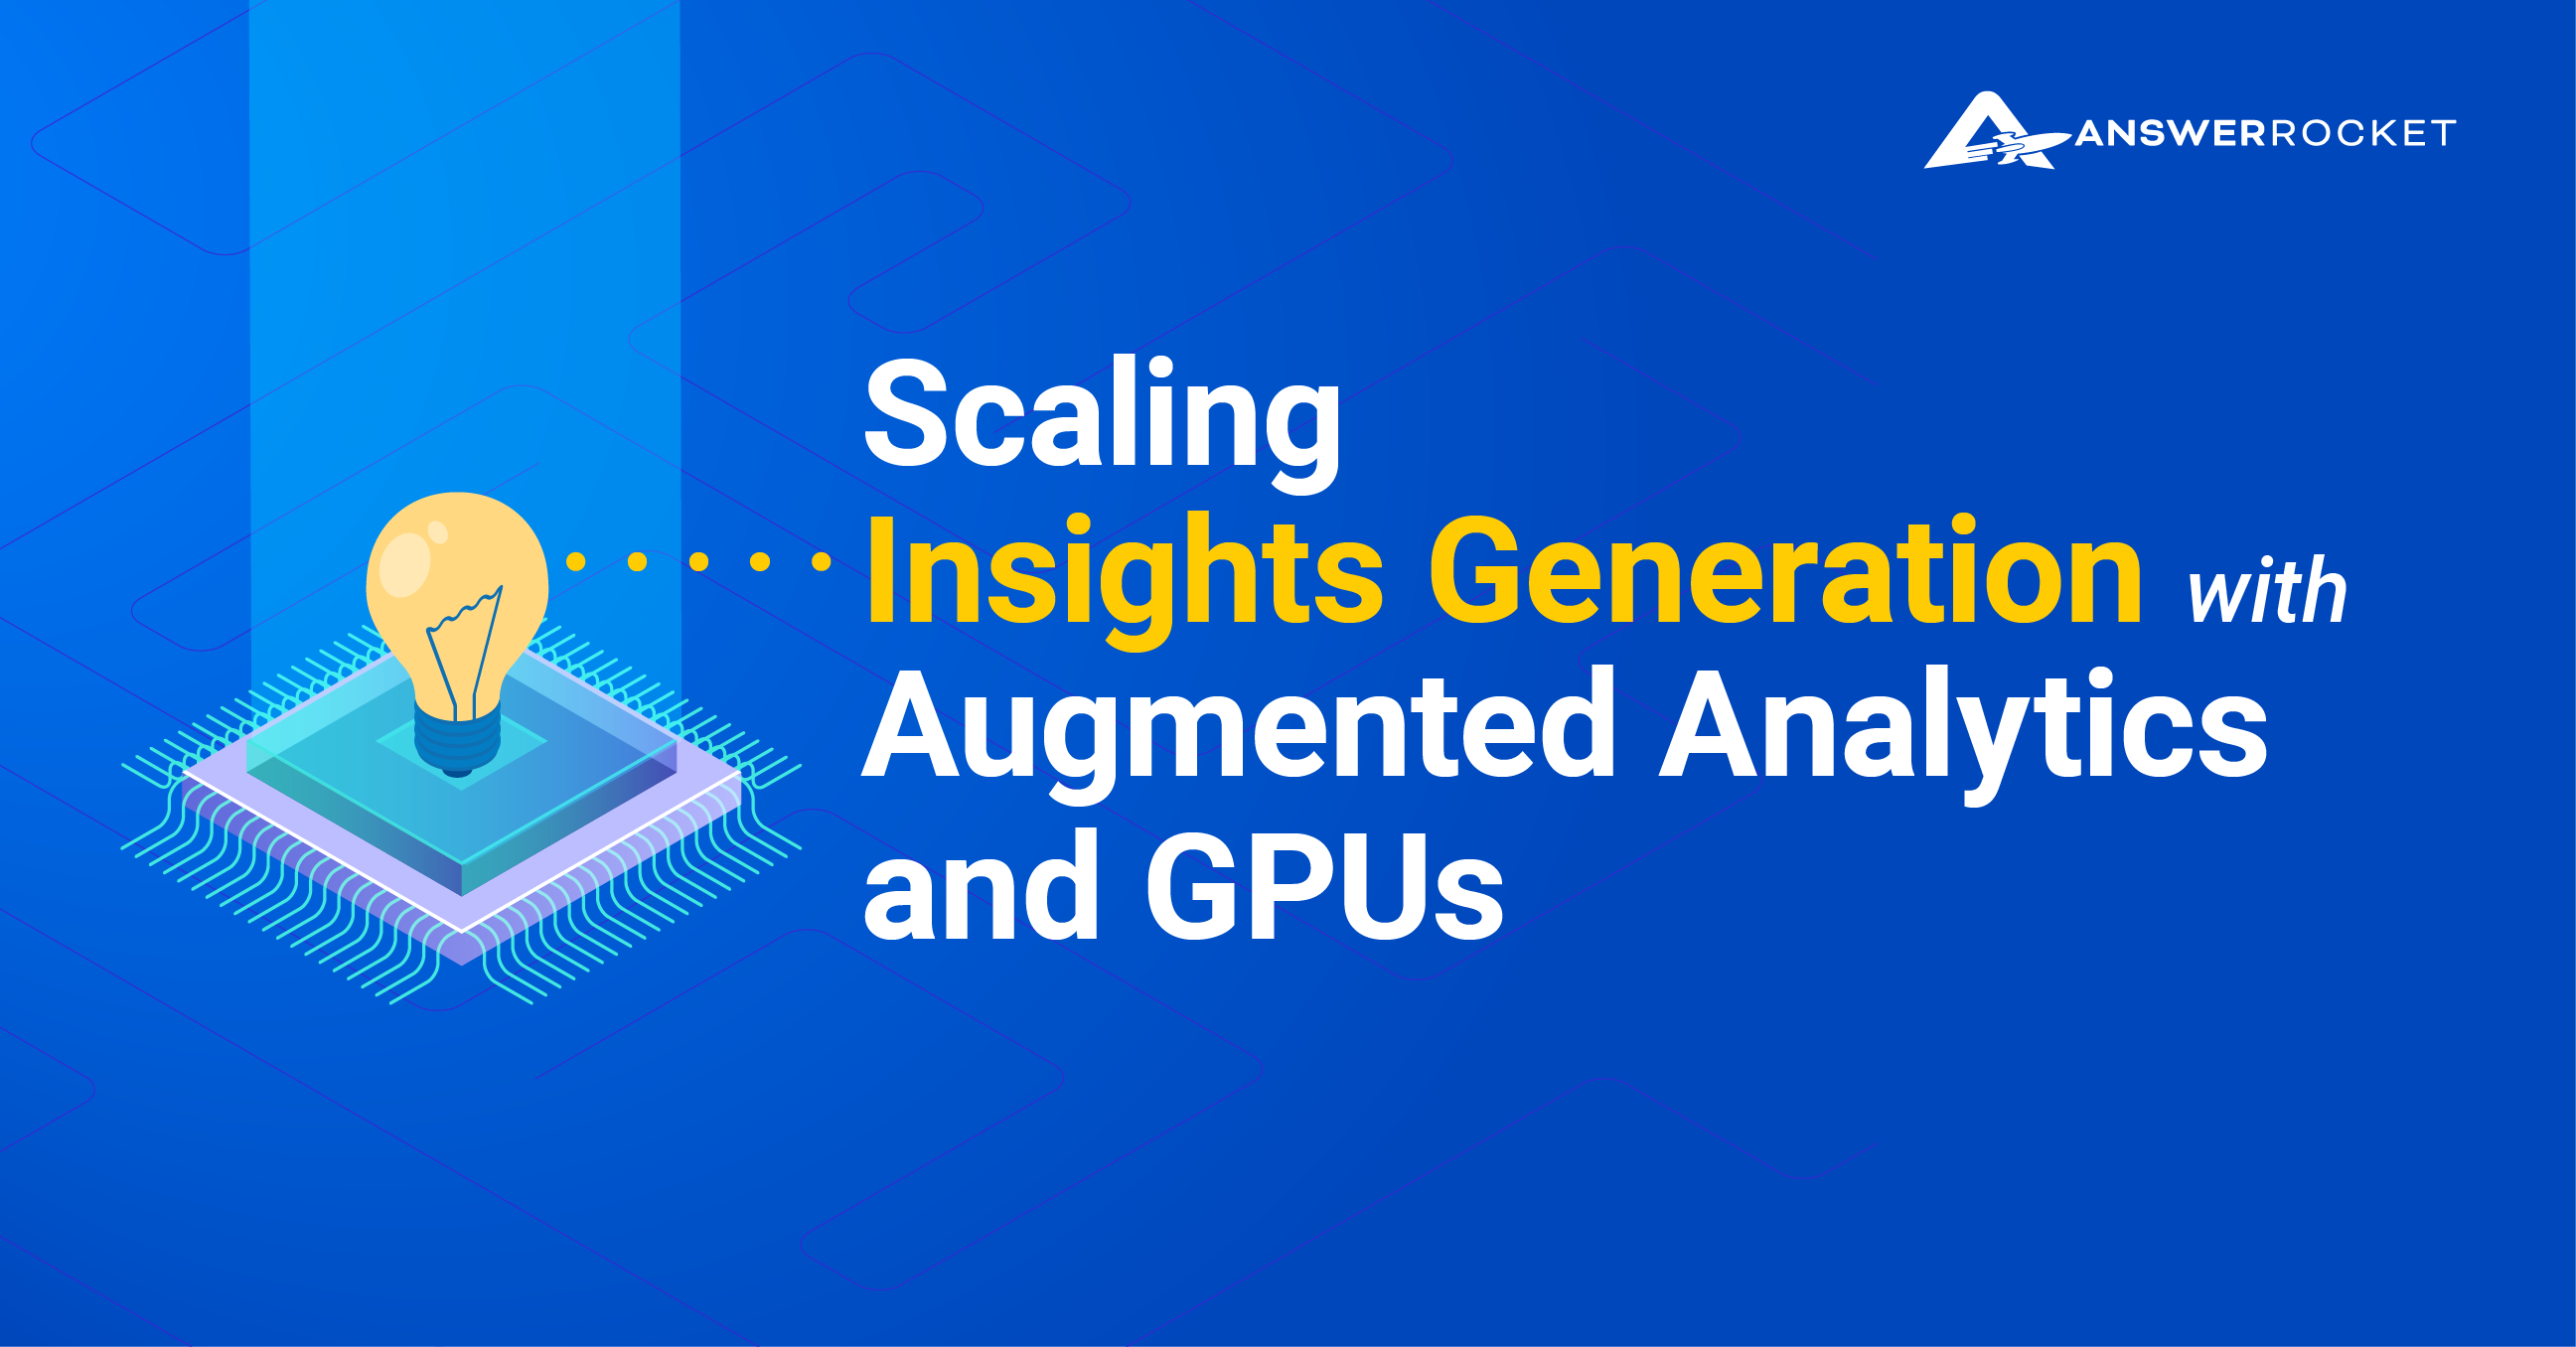 Scaling Insights Generation with GPUs